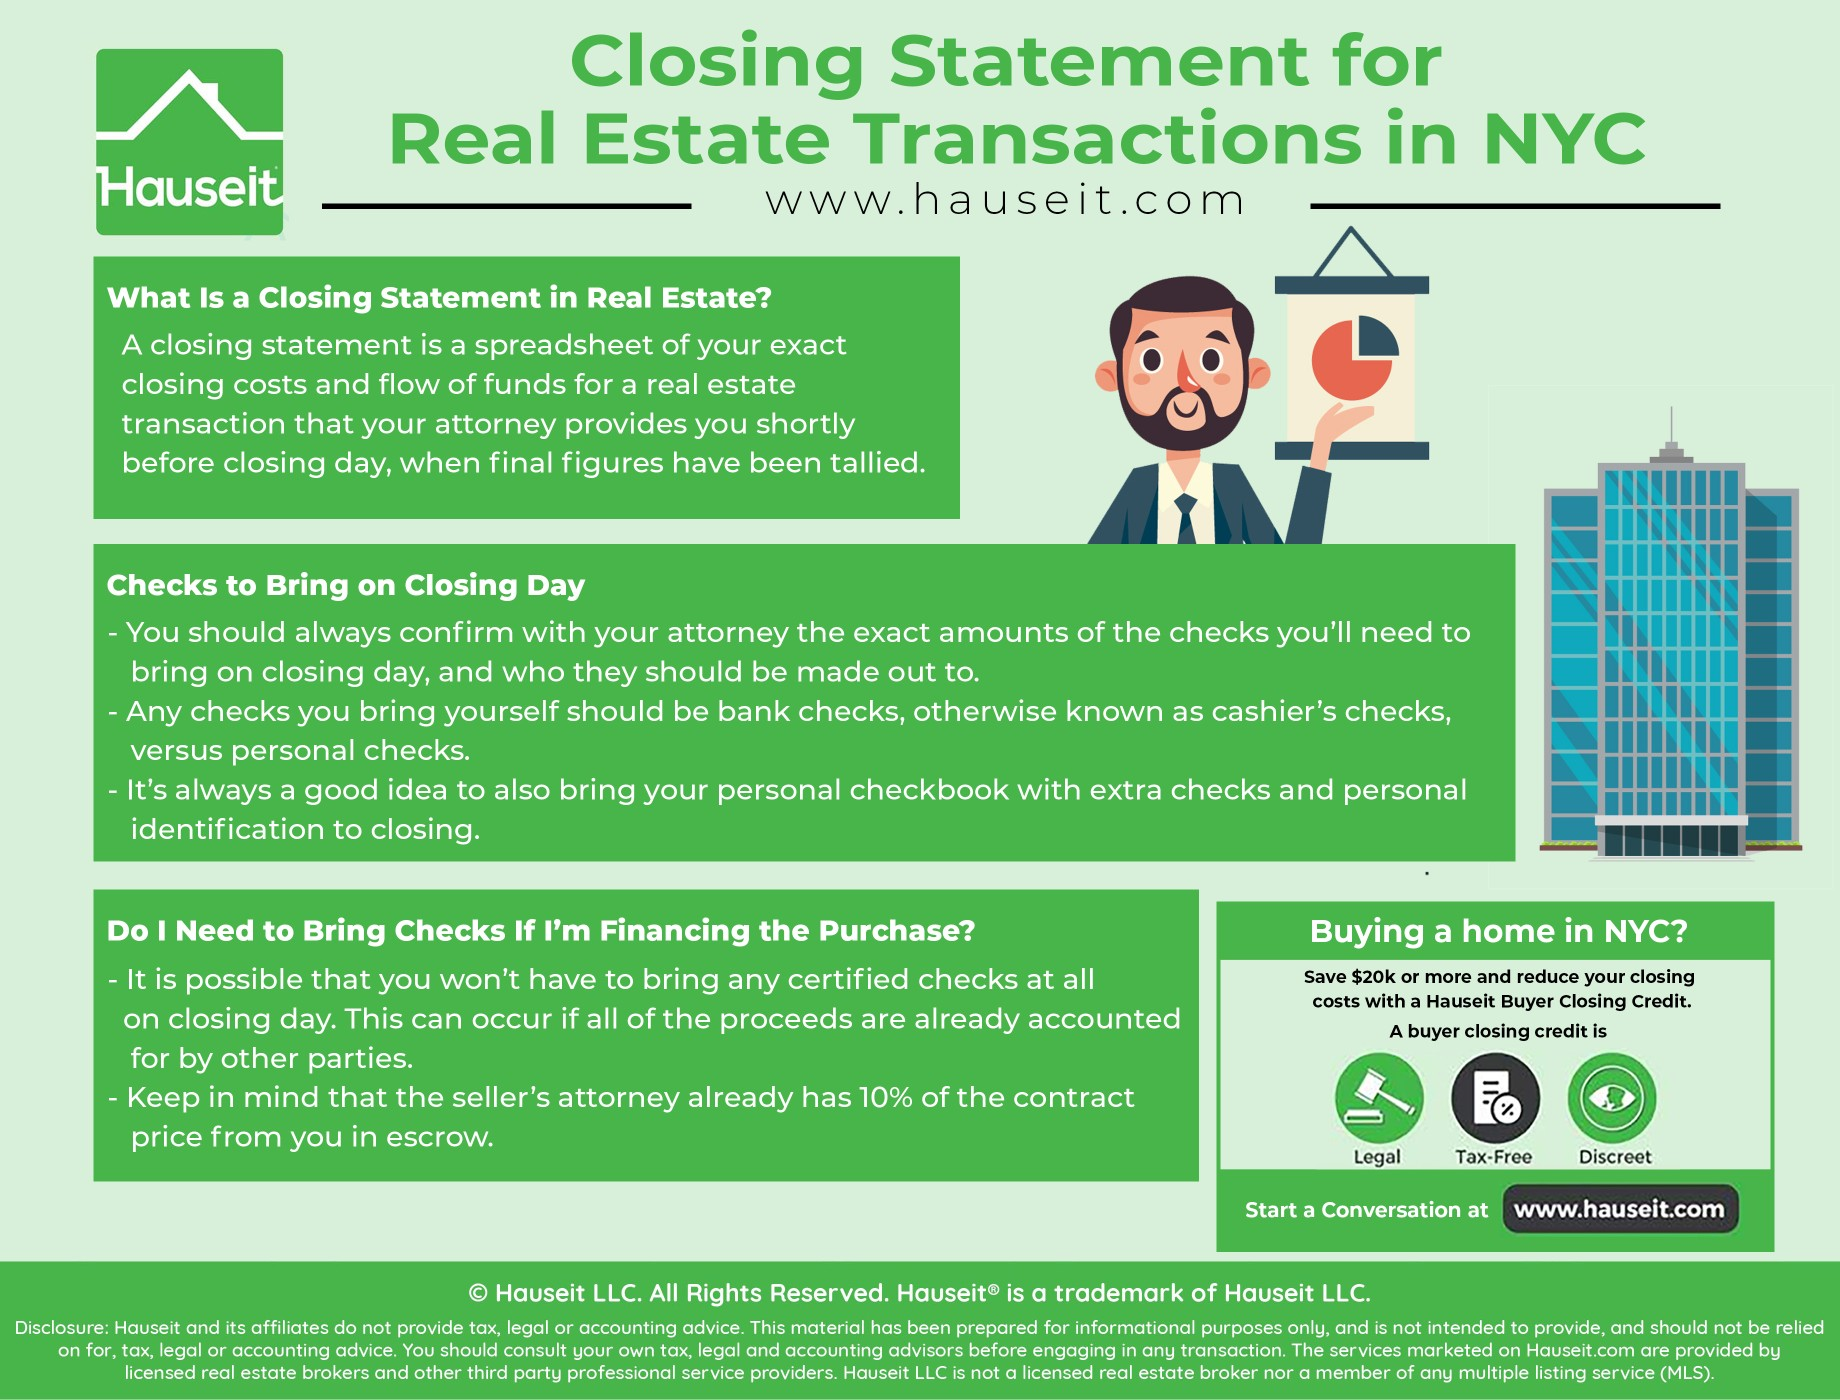 What is a real estate closing statement? What does a closing statement for an apartment purchase in NYC look like? What checks do I need to bring on closing day? We'll go through a sample real estate closing statement with you in this article and explain what you'll need to do before closing day.